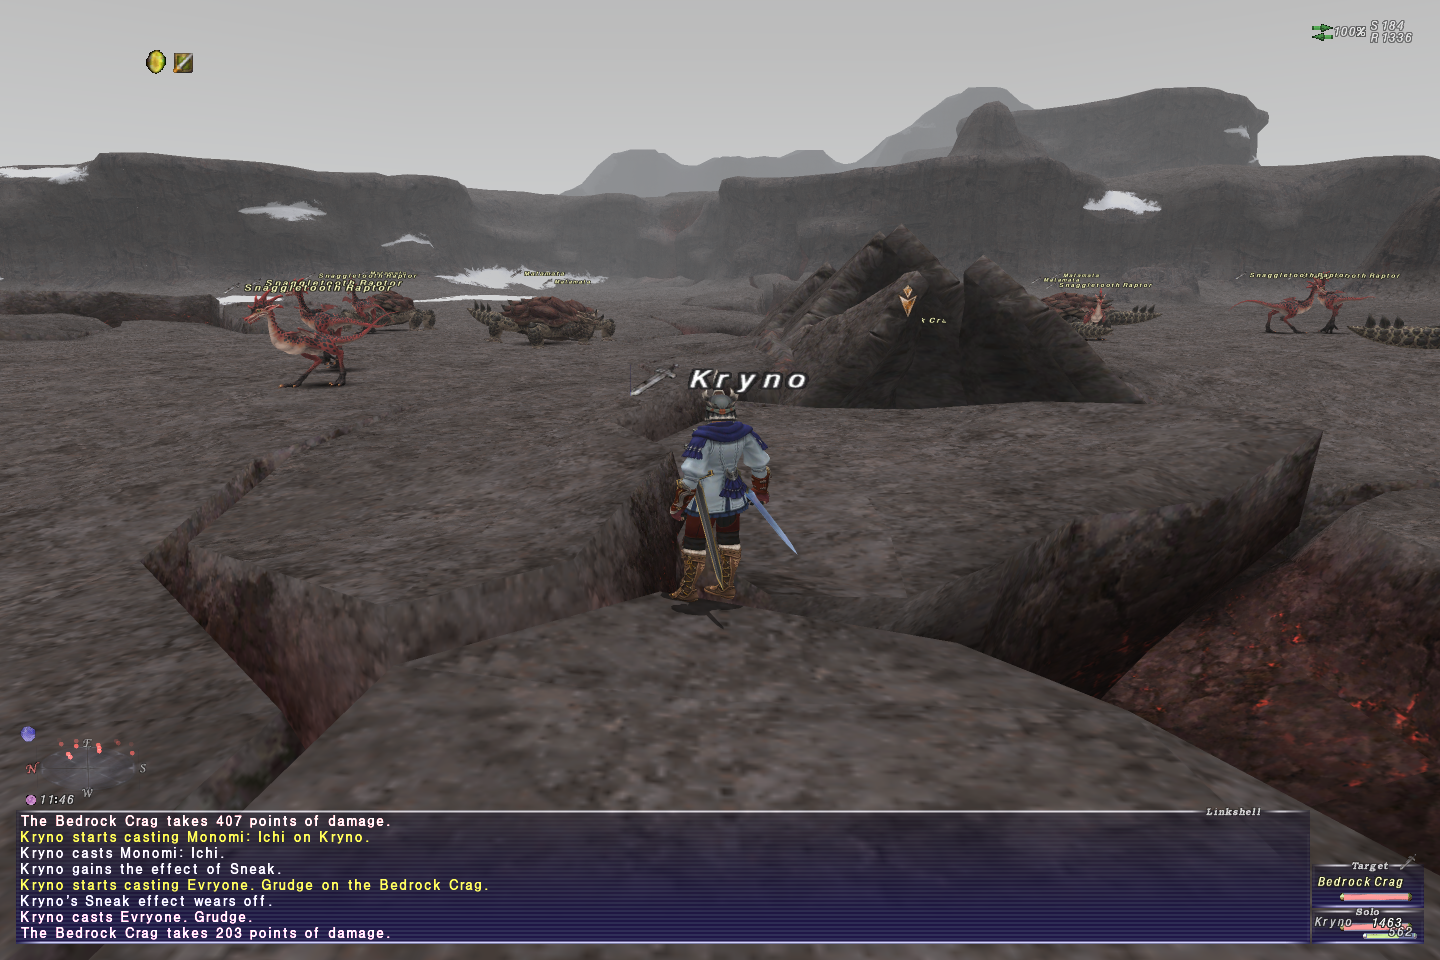 6souls ffxi remember gh-67 believe bottom below area south half upper also reive bigger open areas mining back hopefully routes used going reives down gelid lair from might easy ones gates were tell where exactly yeah thread hypocritical missing cant tried speaking relatively colonization look iirc thru small pretty long time kamihr